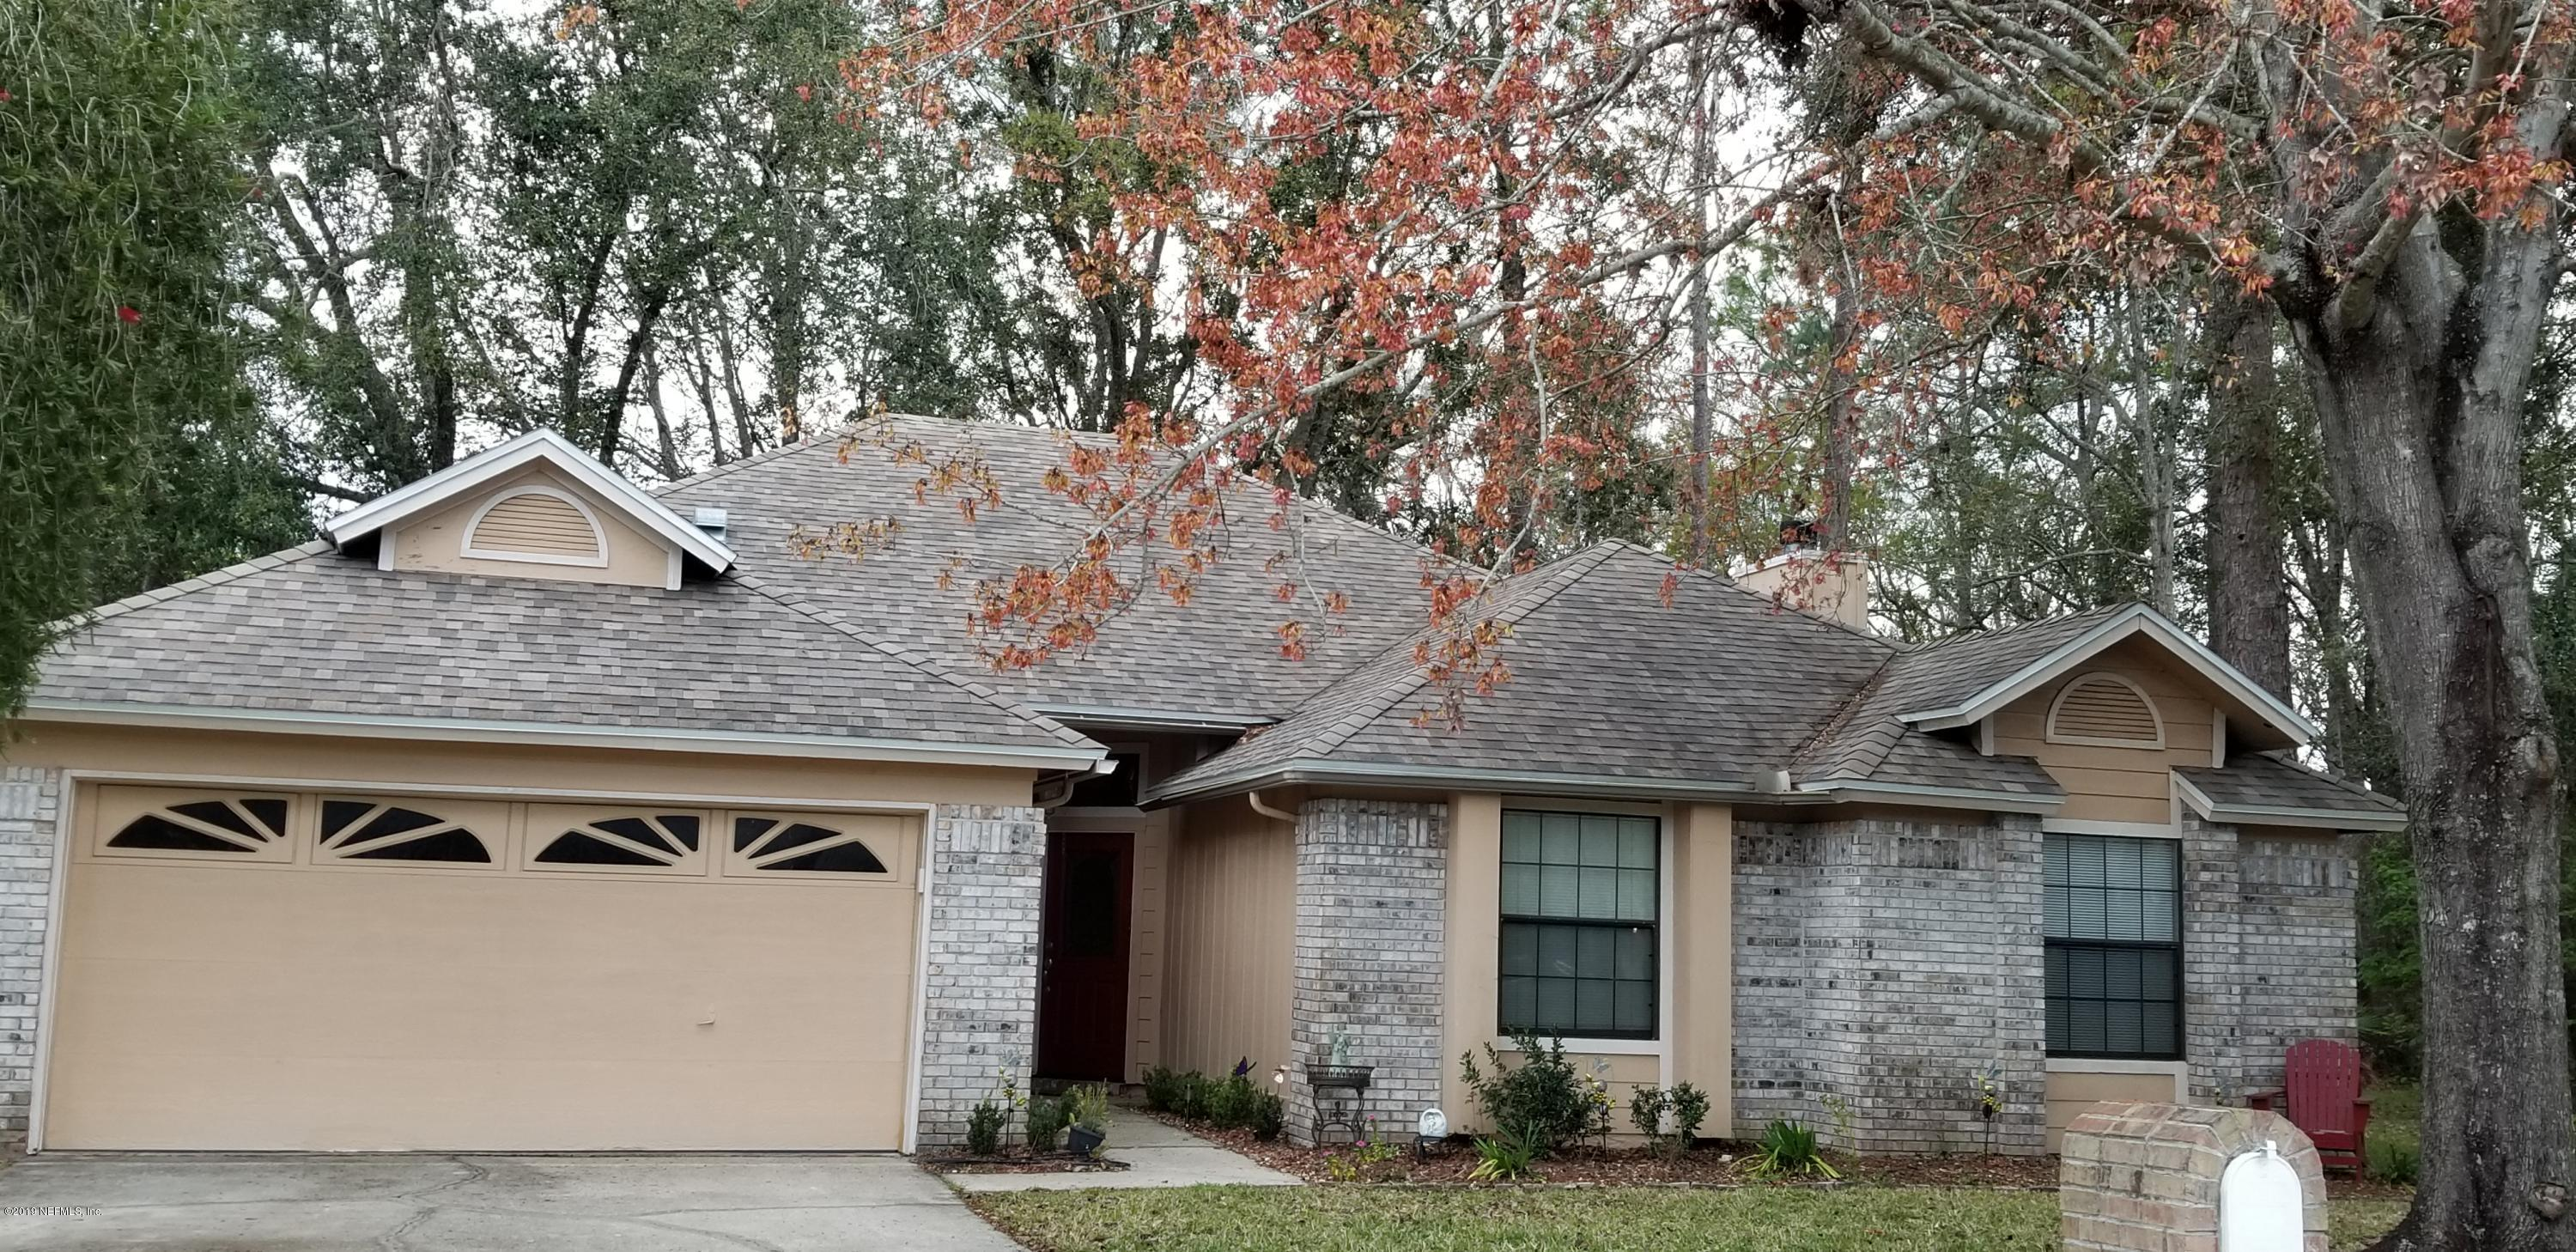 436 WYNFIELD, FLEMING ISLAND, FLORIDA 32003, 3 Bedrooms Bedrooms, ,2 BathroomsBathrooms,Residential - single family,For sale,WYNFIELD,980618